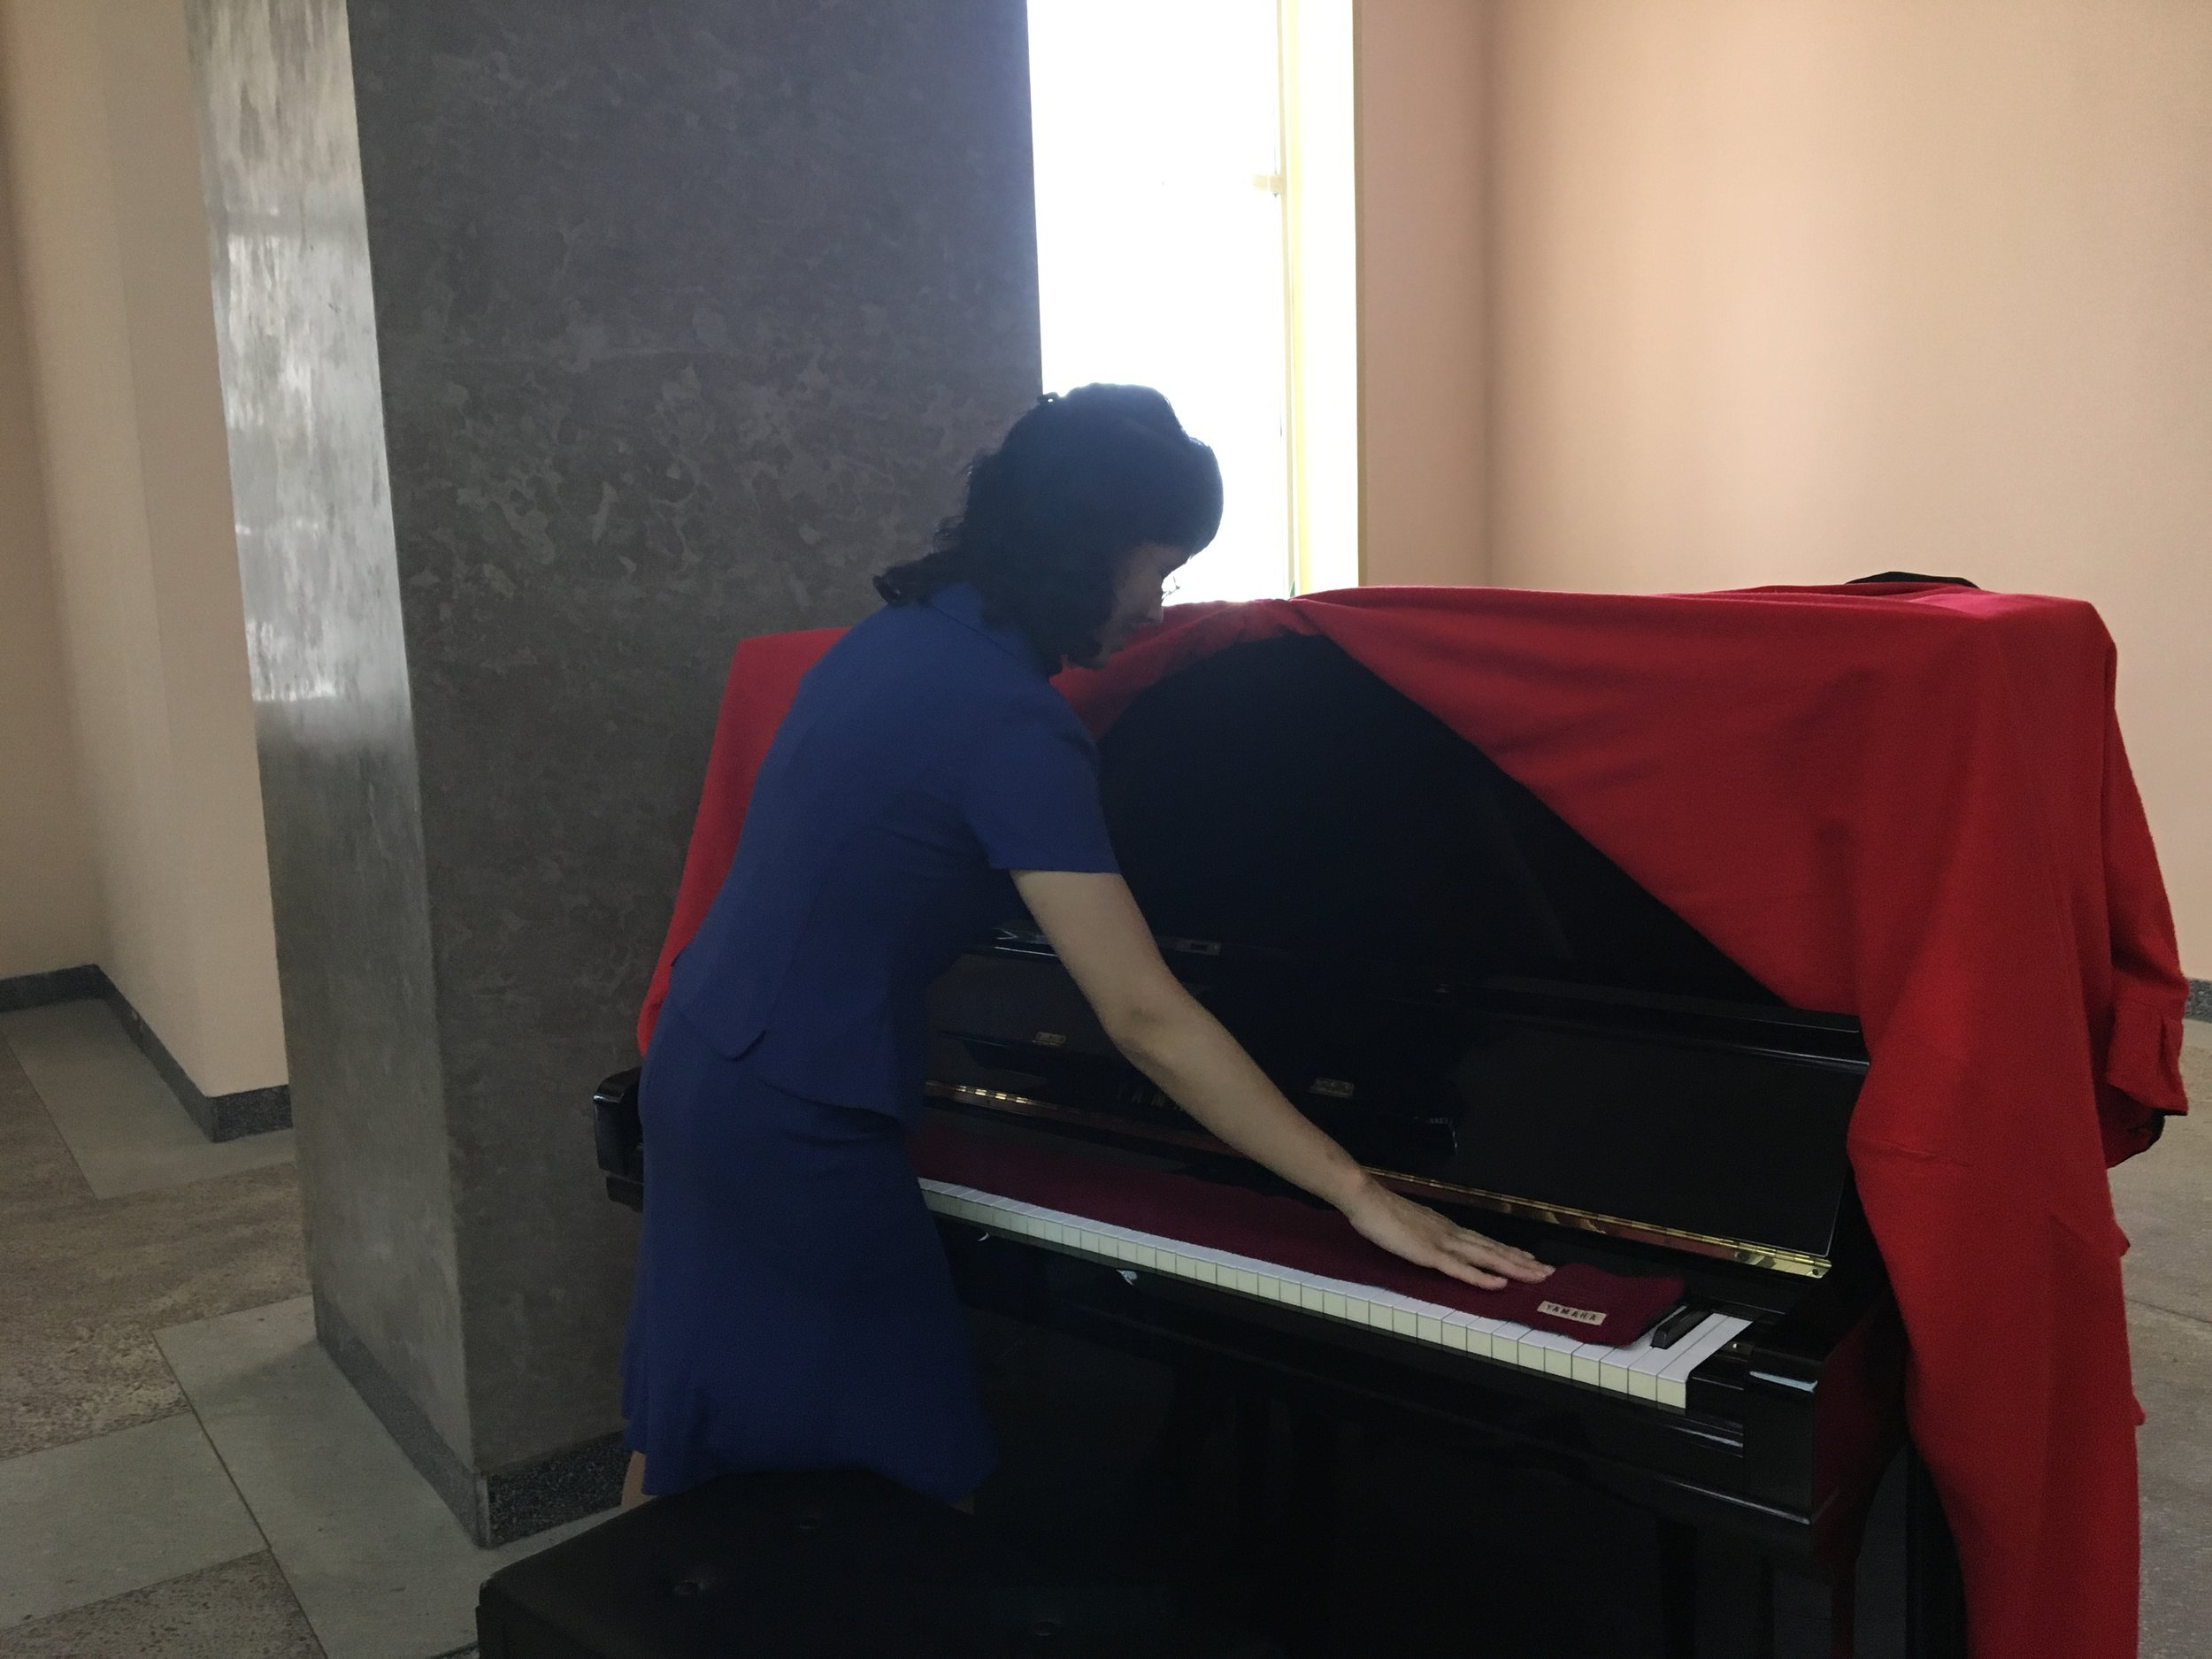 A Yamaha piano inside the library that I played on for a minute